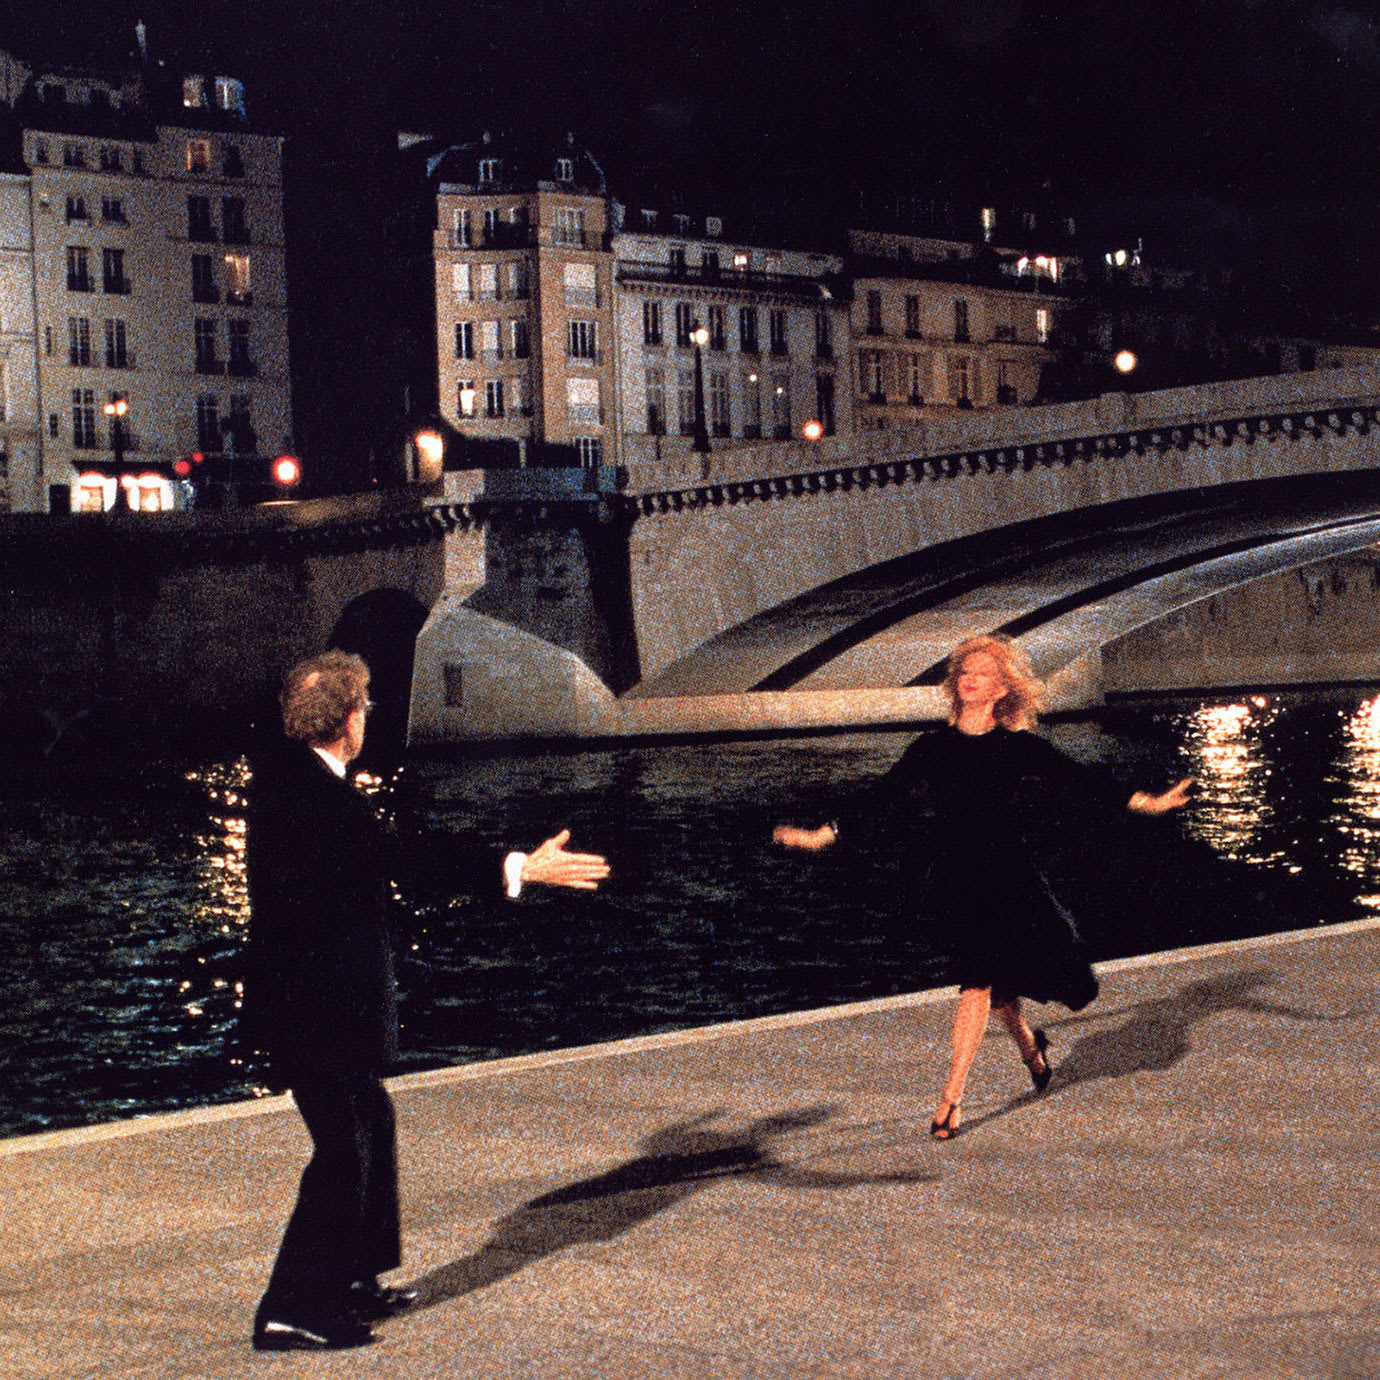 A man and a woman dancing at night by a canal and bridge.